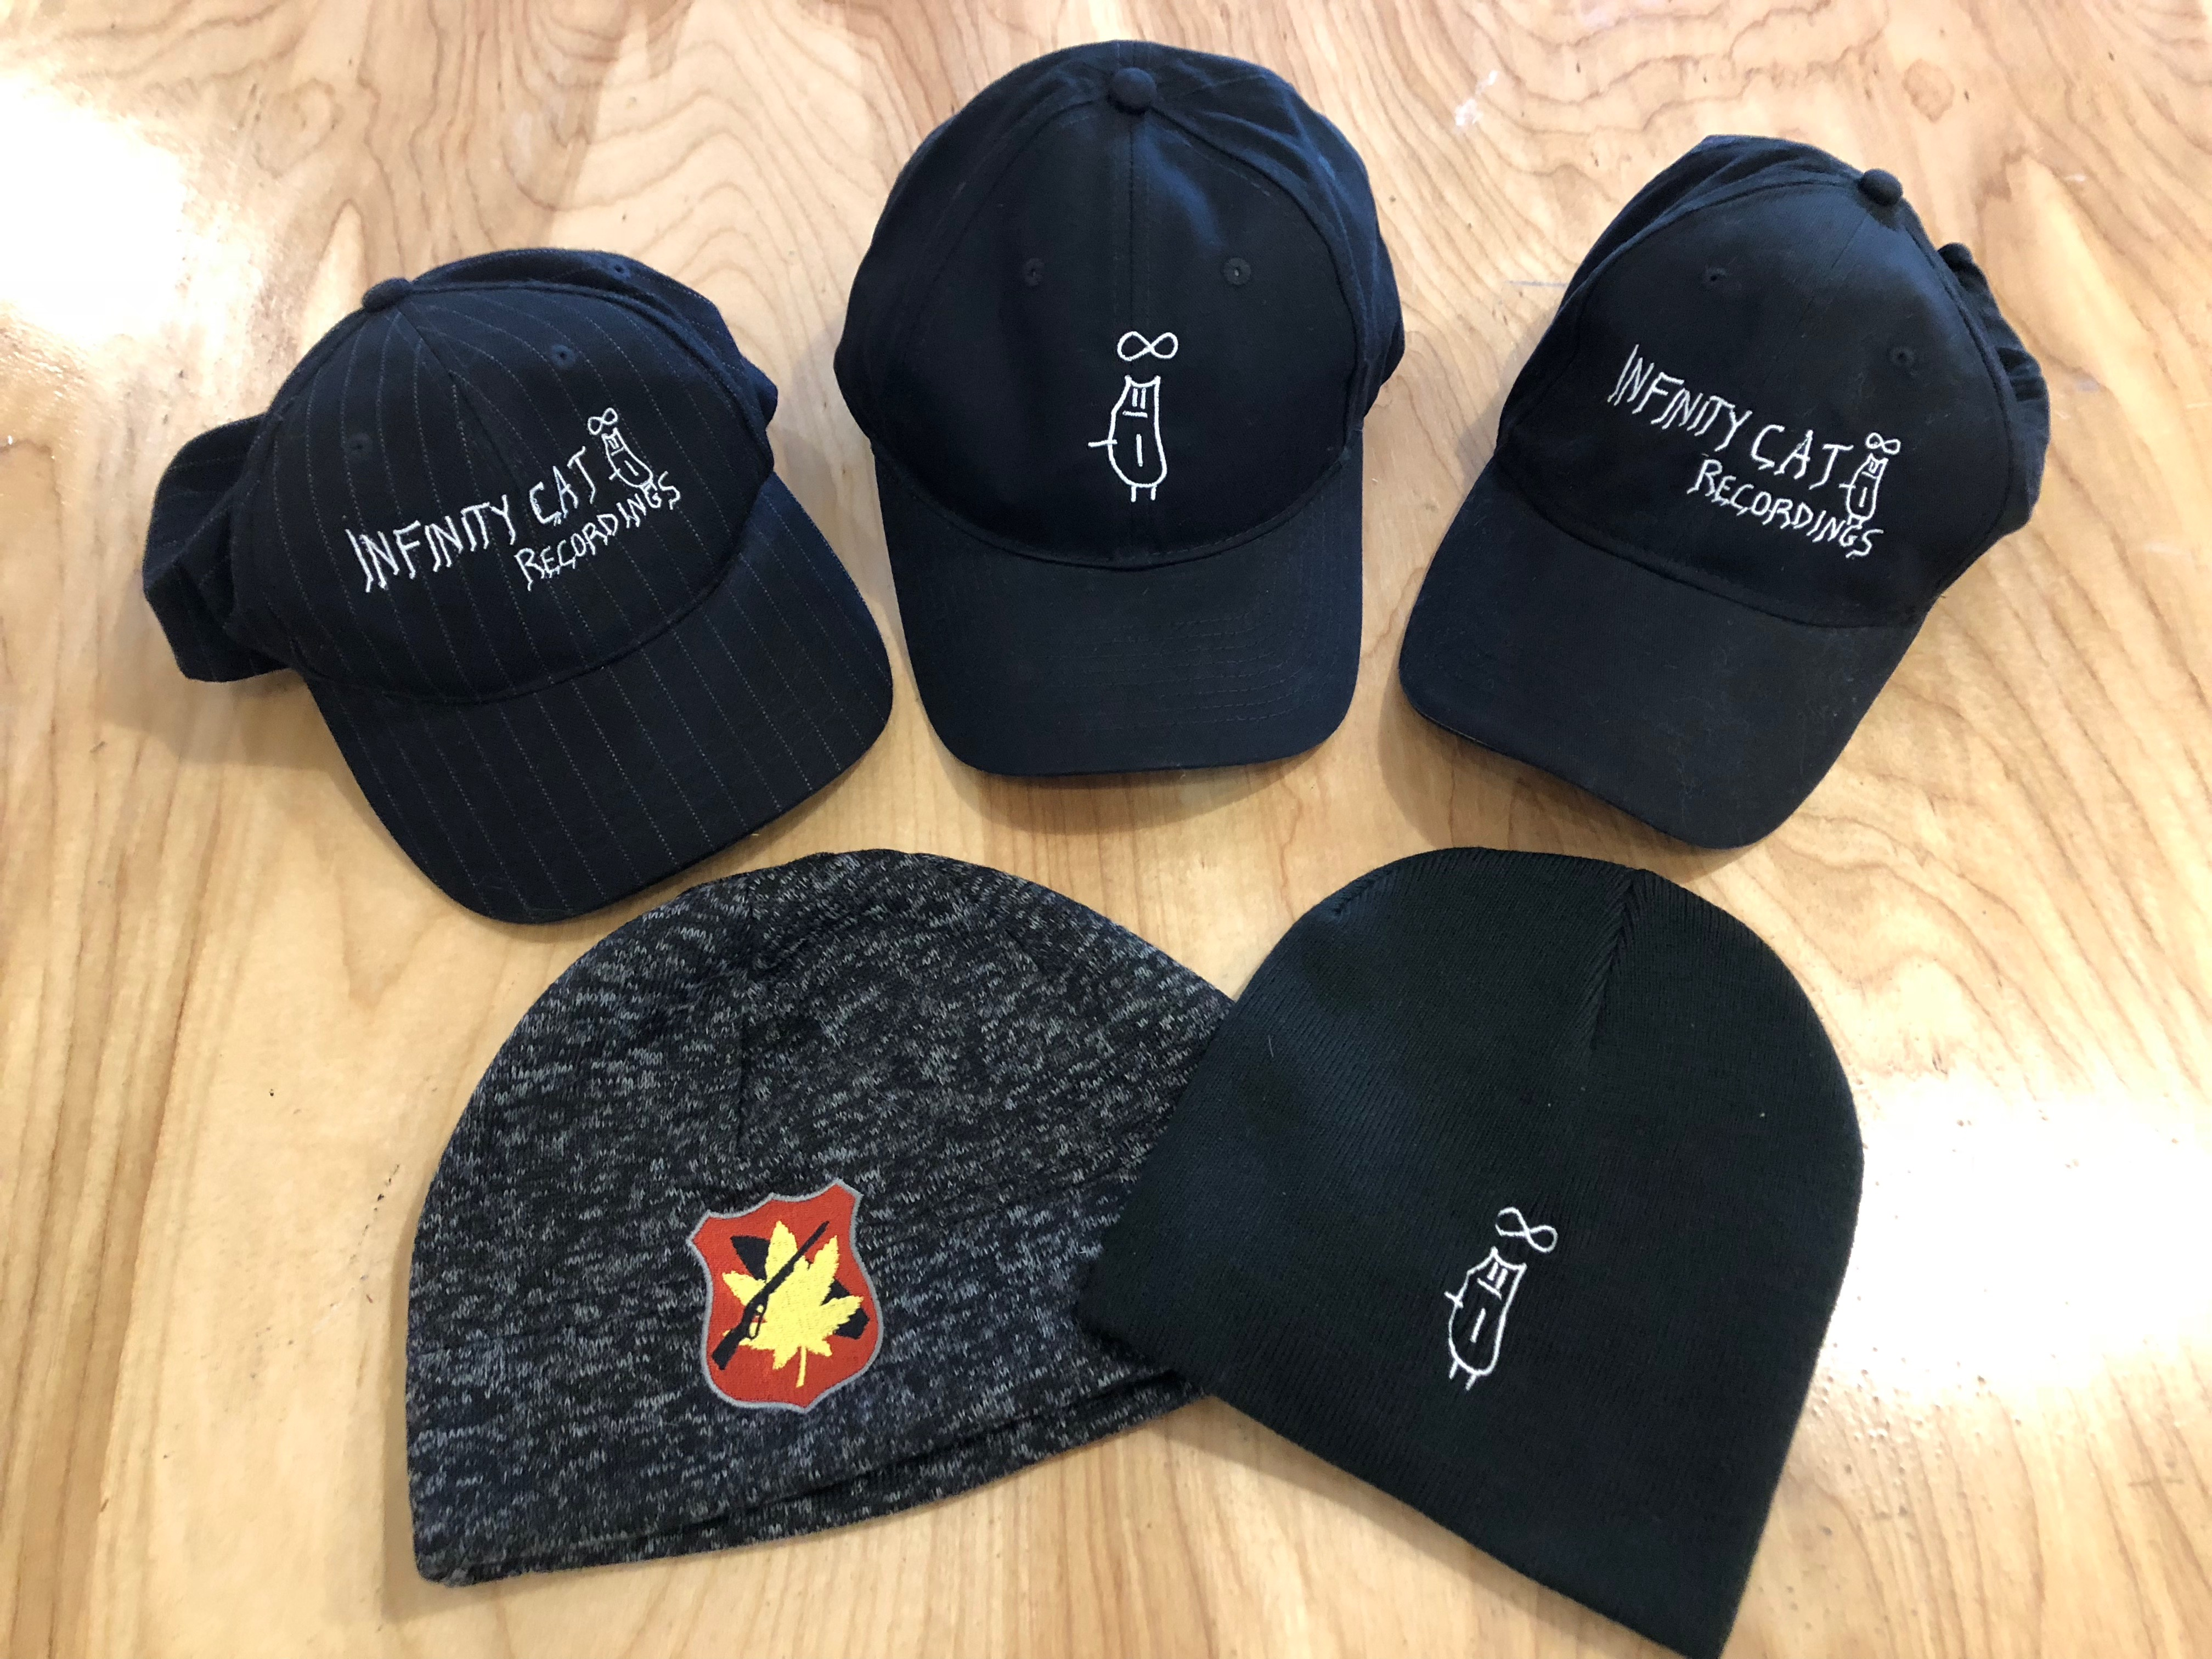 HATS! We have hats! Caps, Beanies, and Hats